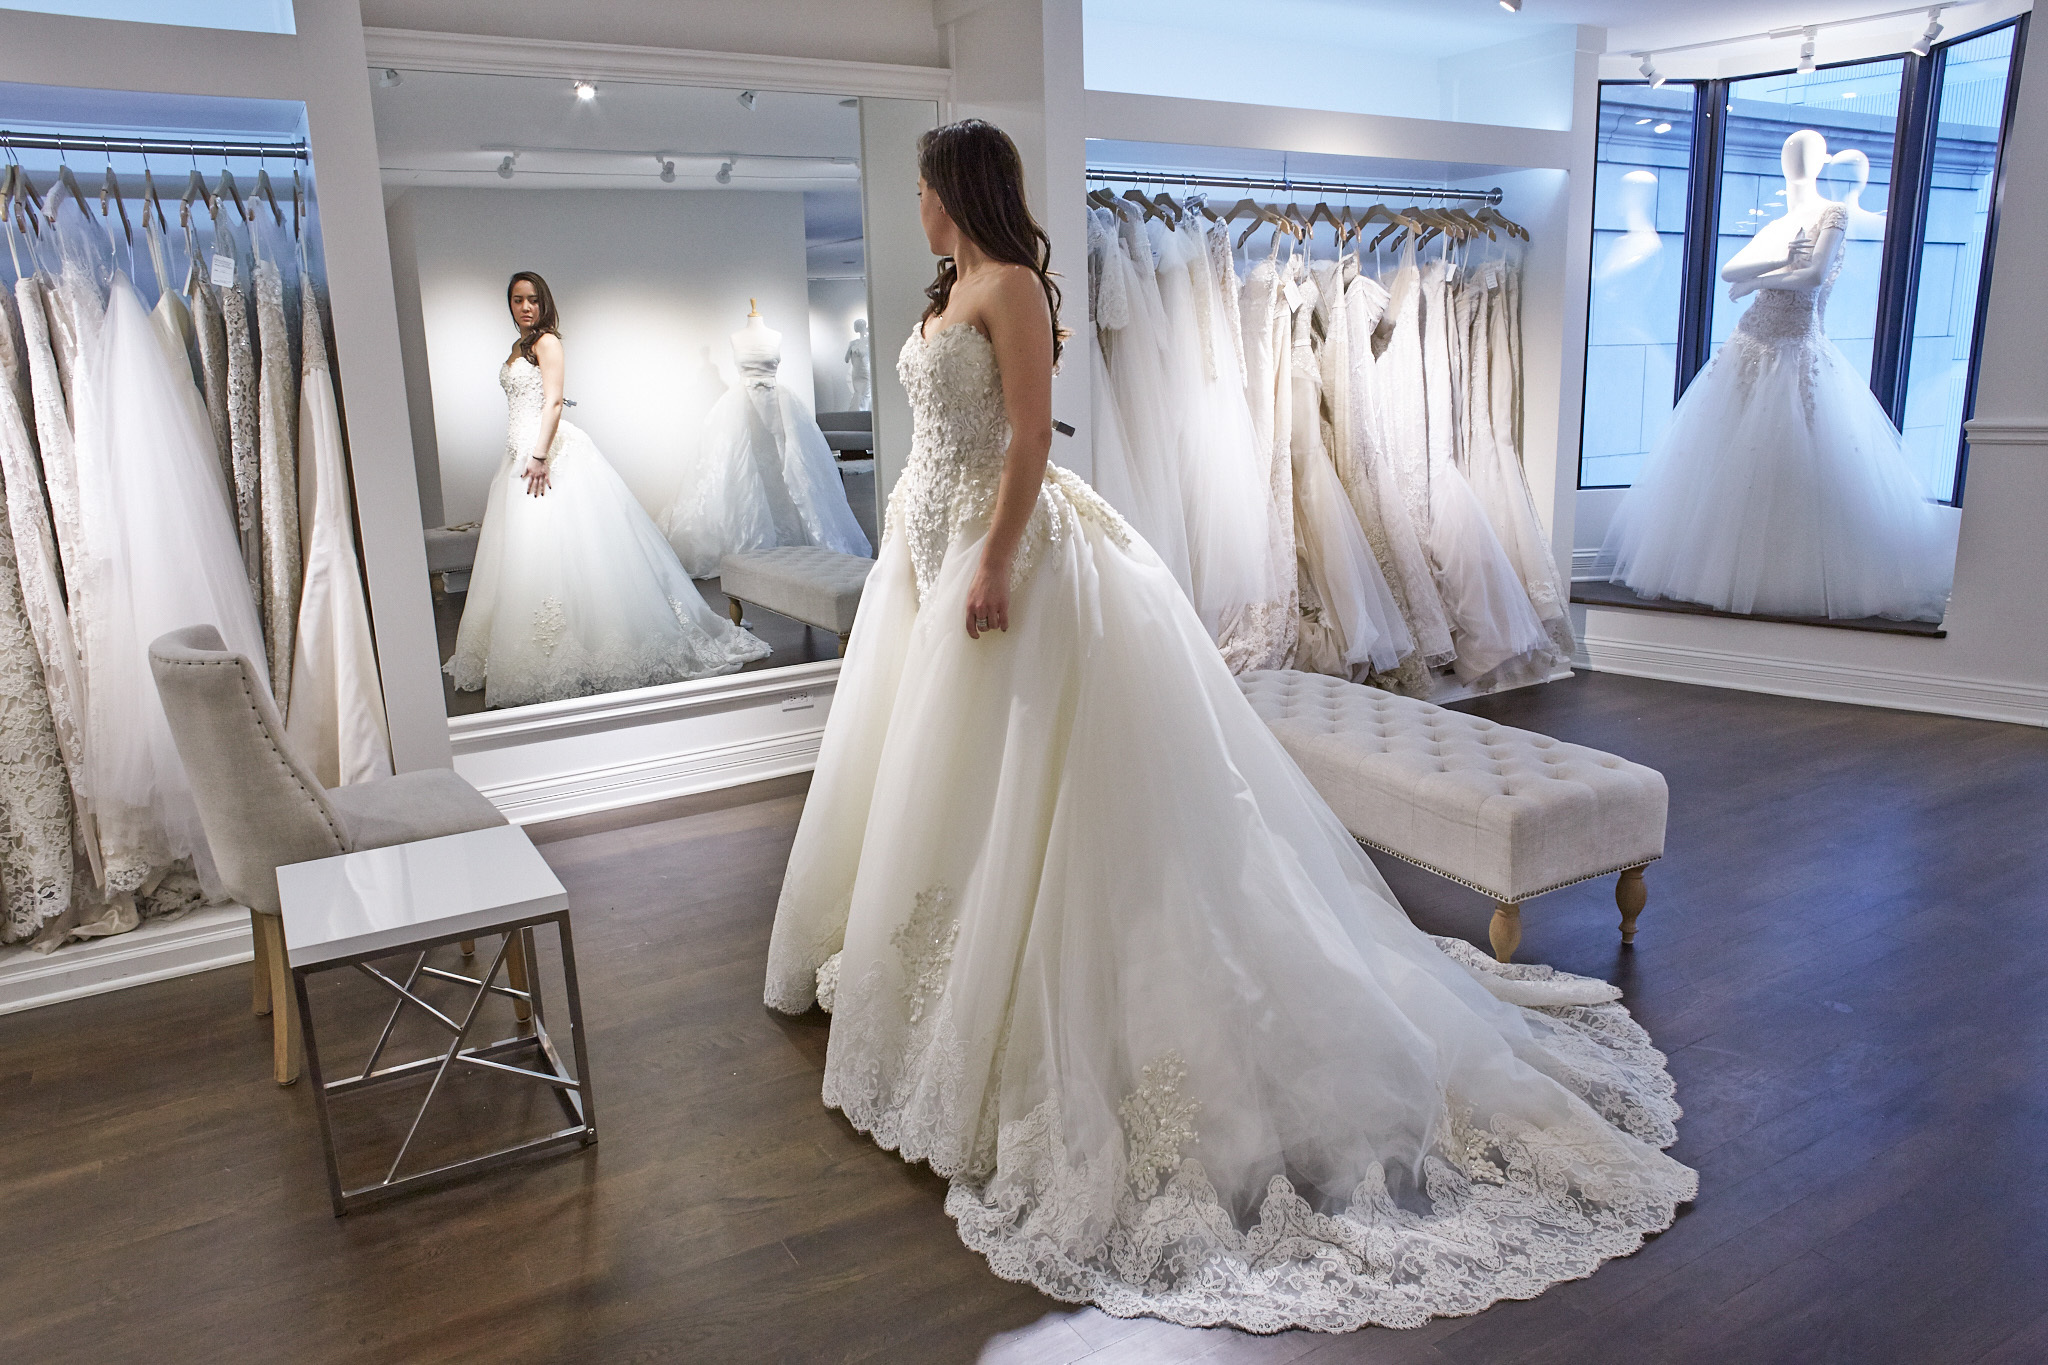 The best bridal shops in chicago for the perfect wedding dress dimitras bridal couture ombrellifo Images